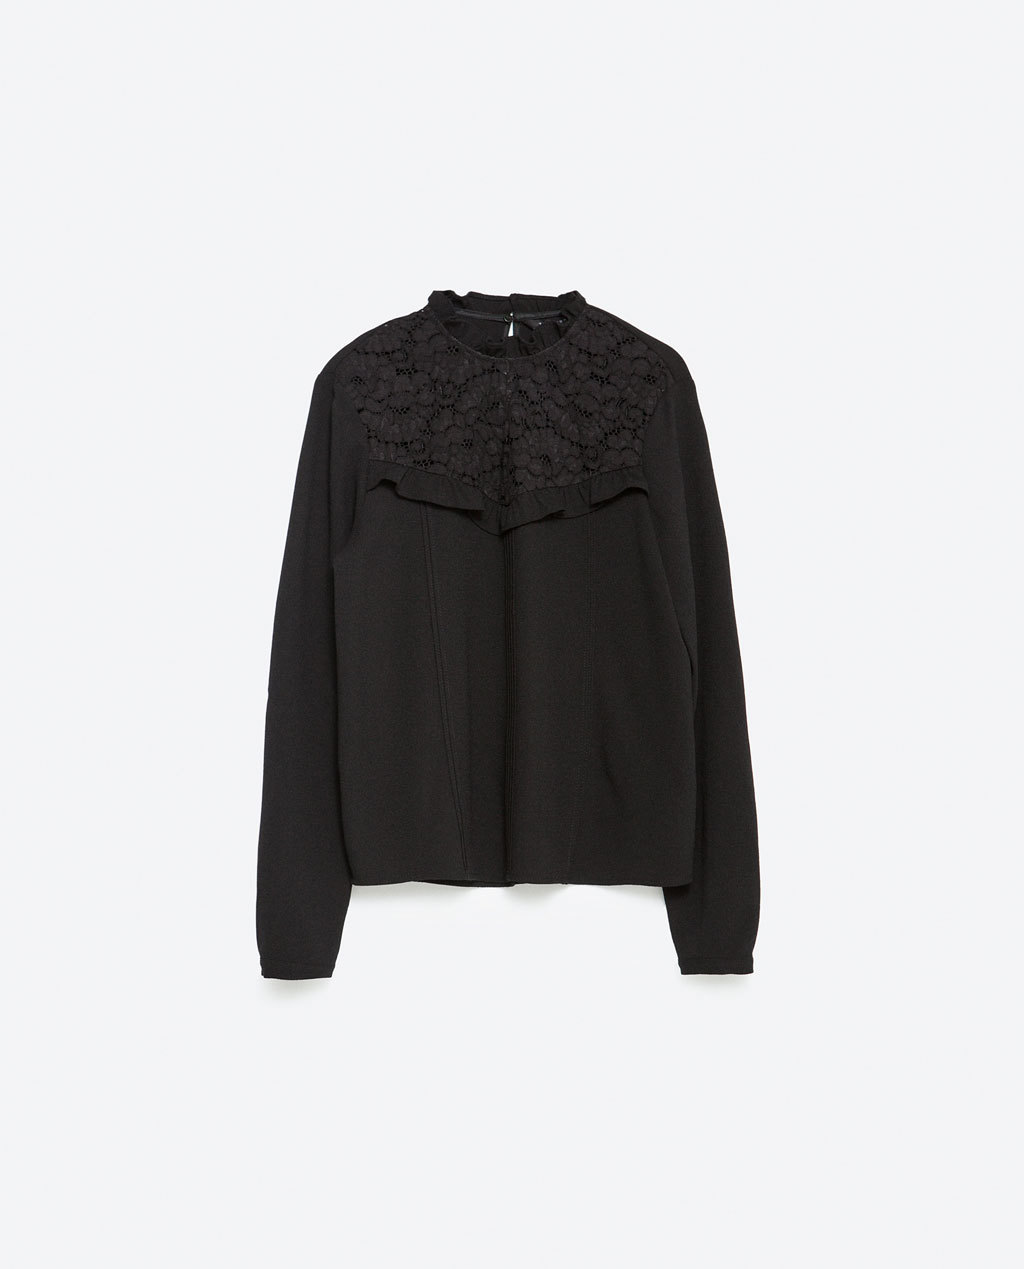 Frill Neckline Blouse - pattern: plain; style: blouse; predominant colour: black; occasions: casual, work, occasion; length: standard; fibres: polyester/polyamide - 100%; fit: loose; neckline: crew; sleeve length: long sleeve; sleeve style: standard; texture group: sheer fabrics/chiffon/organza etc.; pattern type: fabric; embellishment: lace; season: a/w 2015; wardrobe: highlight